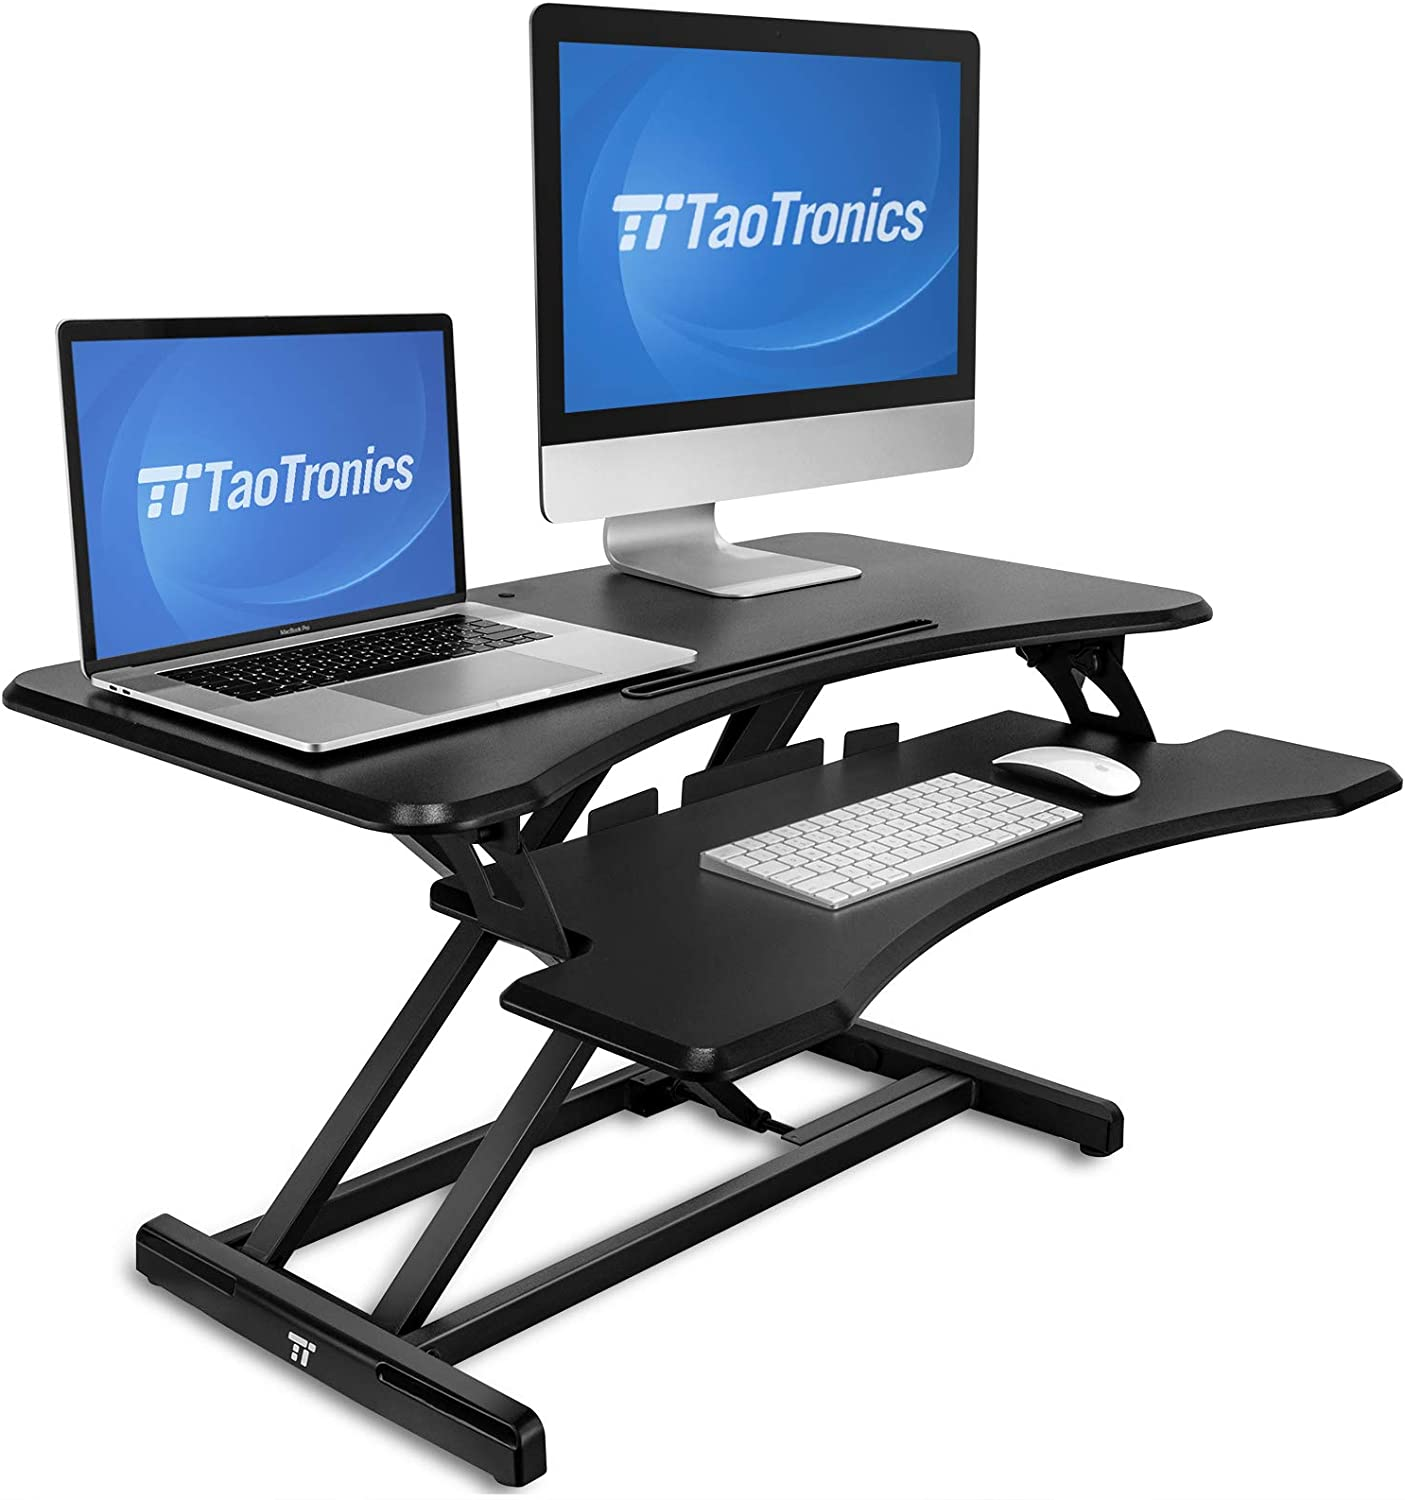 Standing Desk Converter, TaoTronics 36 inch Stand Up Desk Sit to Stand Desk Adjustable Riser, Fit Dual Monitors with Removable Keyboard Tray Ergonomic Workstation